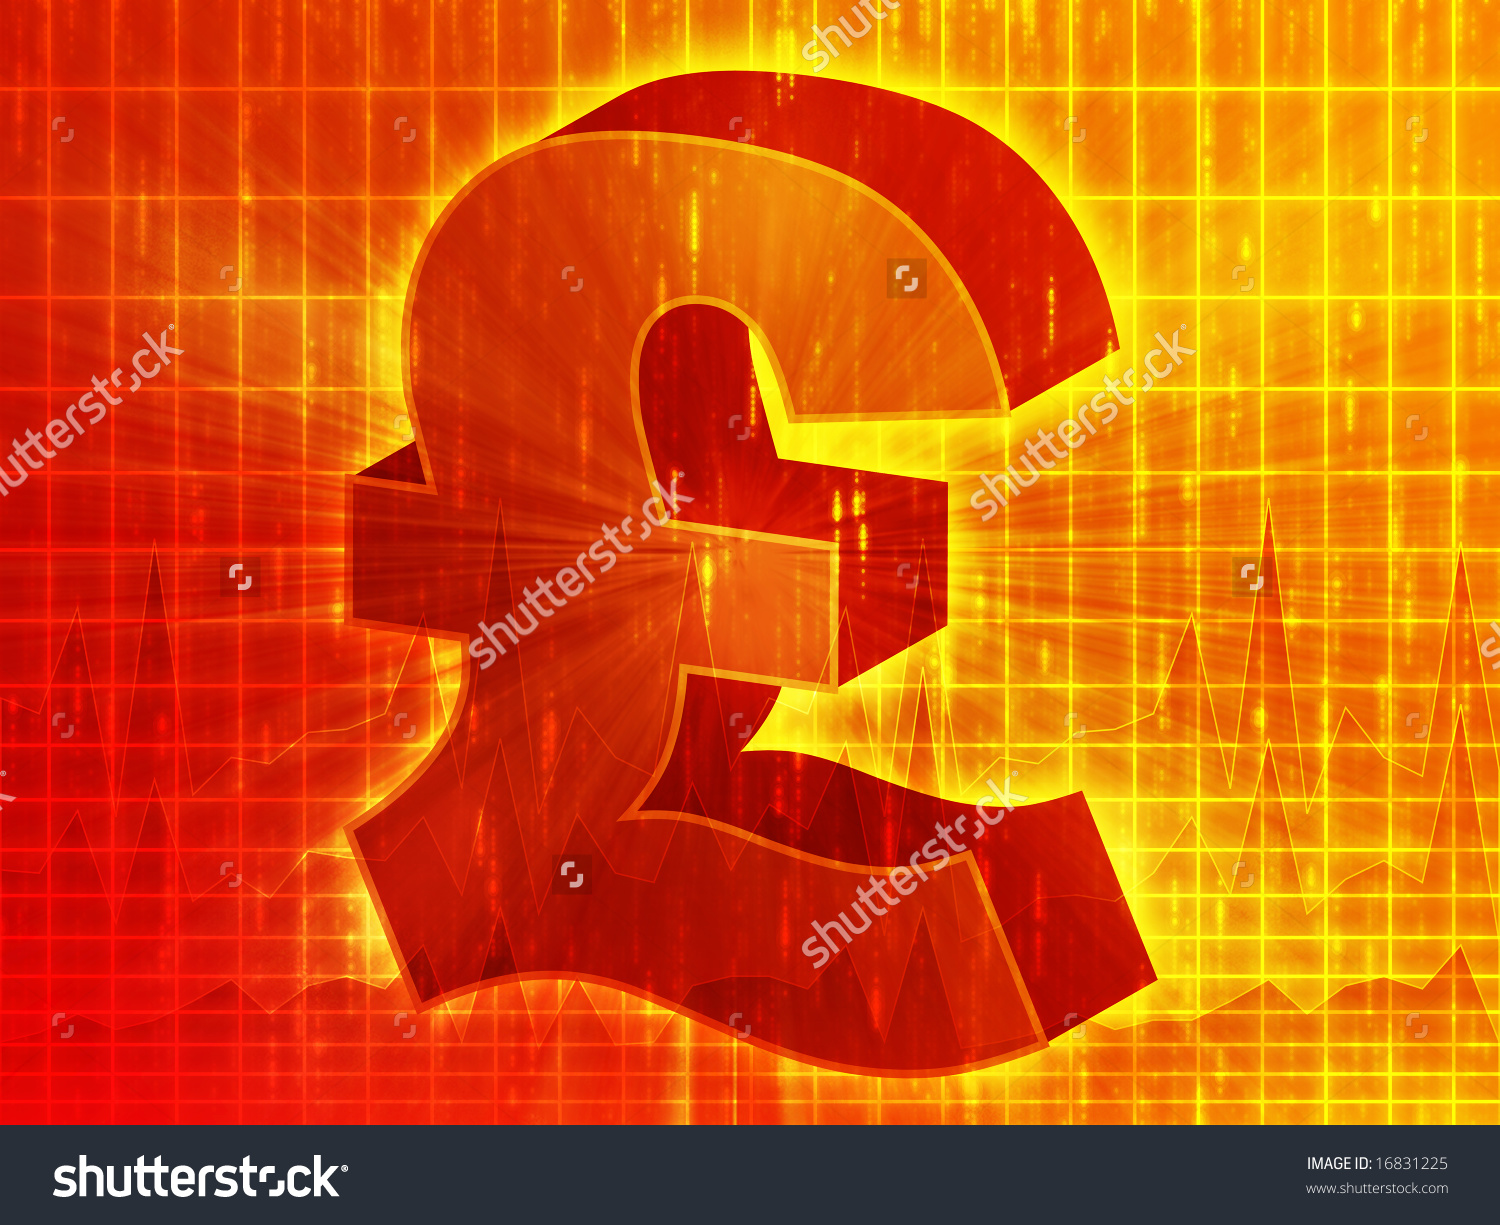 British pound currency symbol over financial stock illustration british pound currency symbol over financial chart diagram biocorpaavc Images